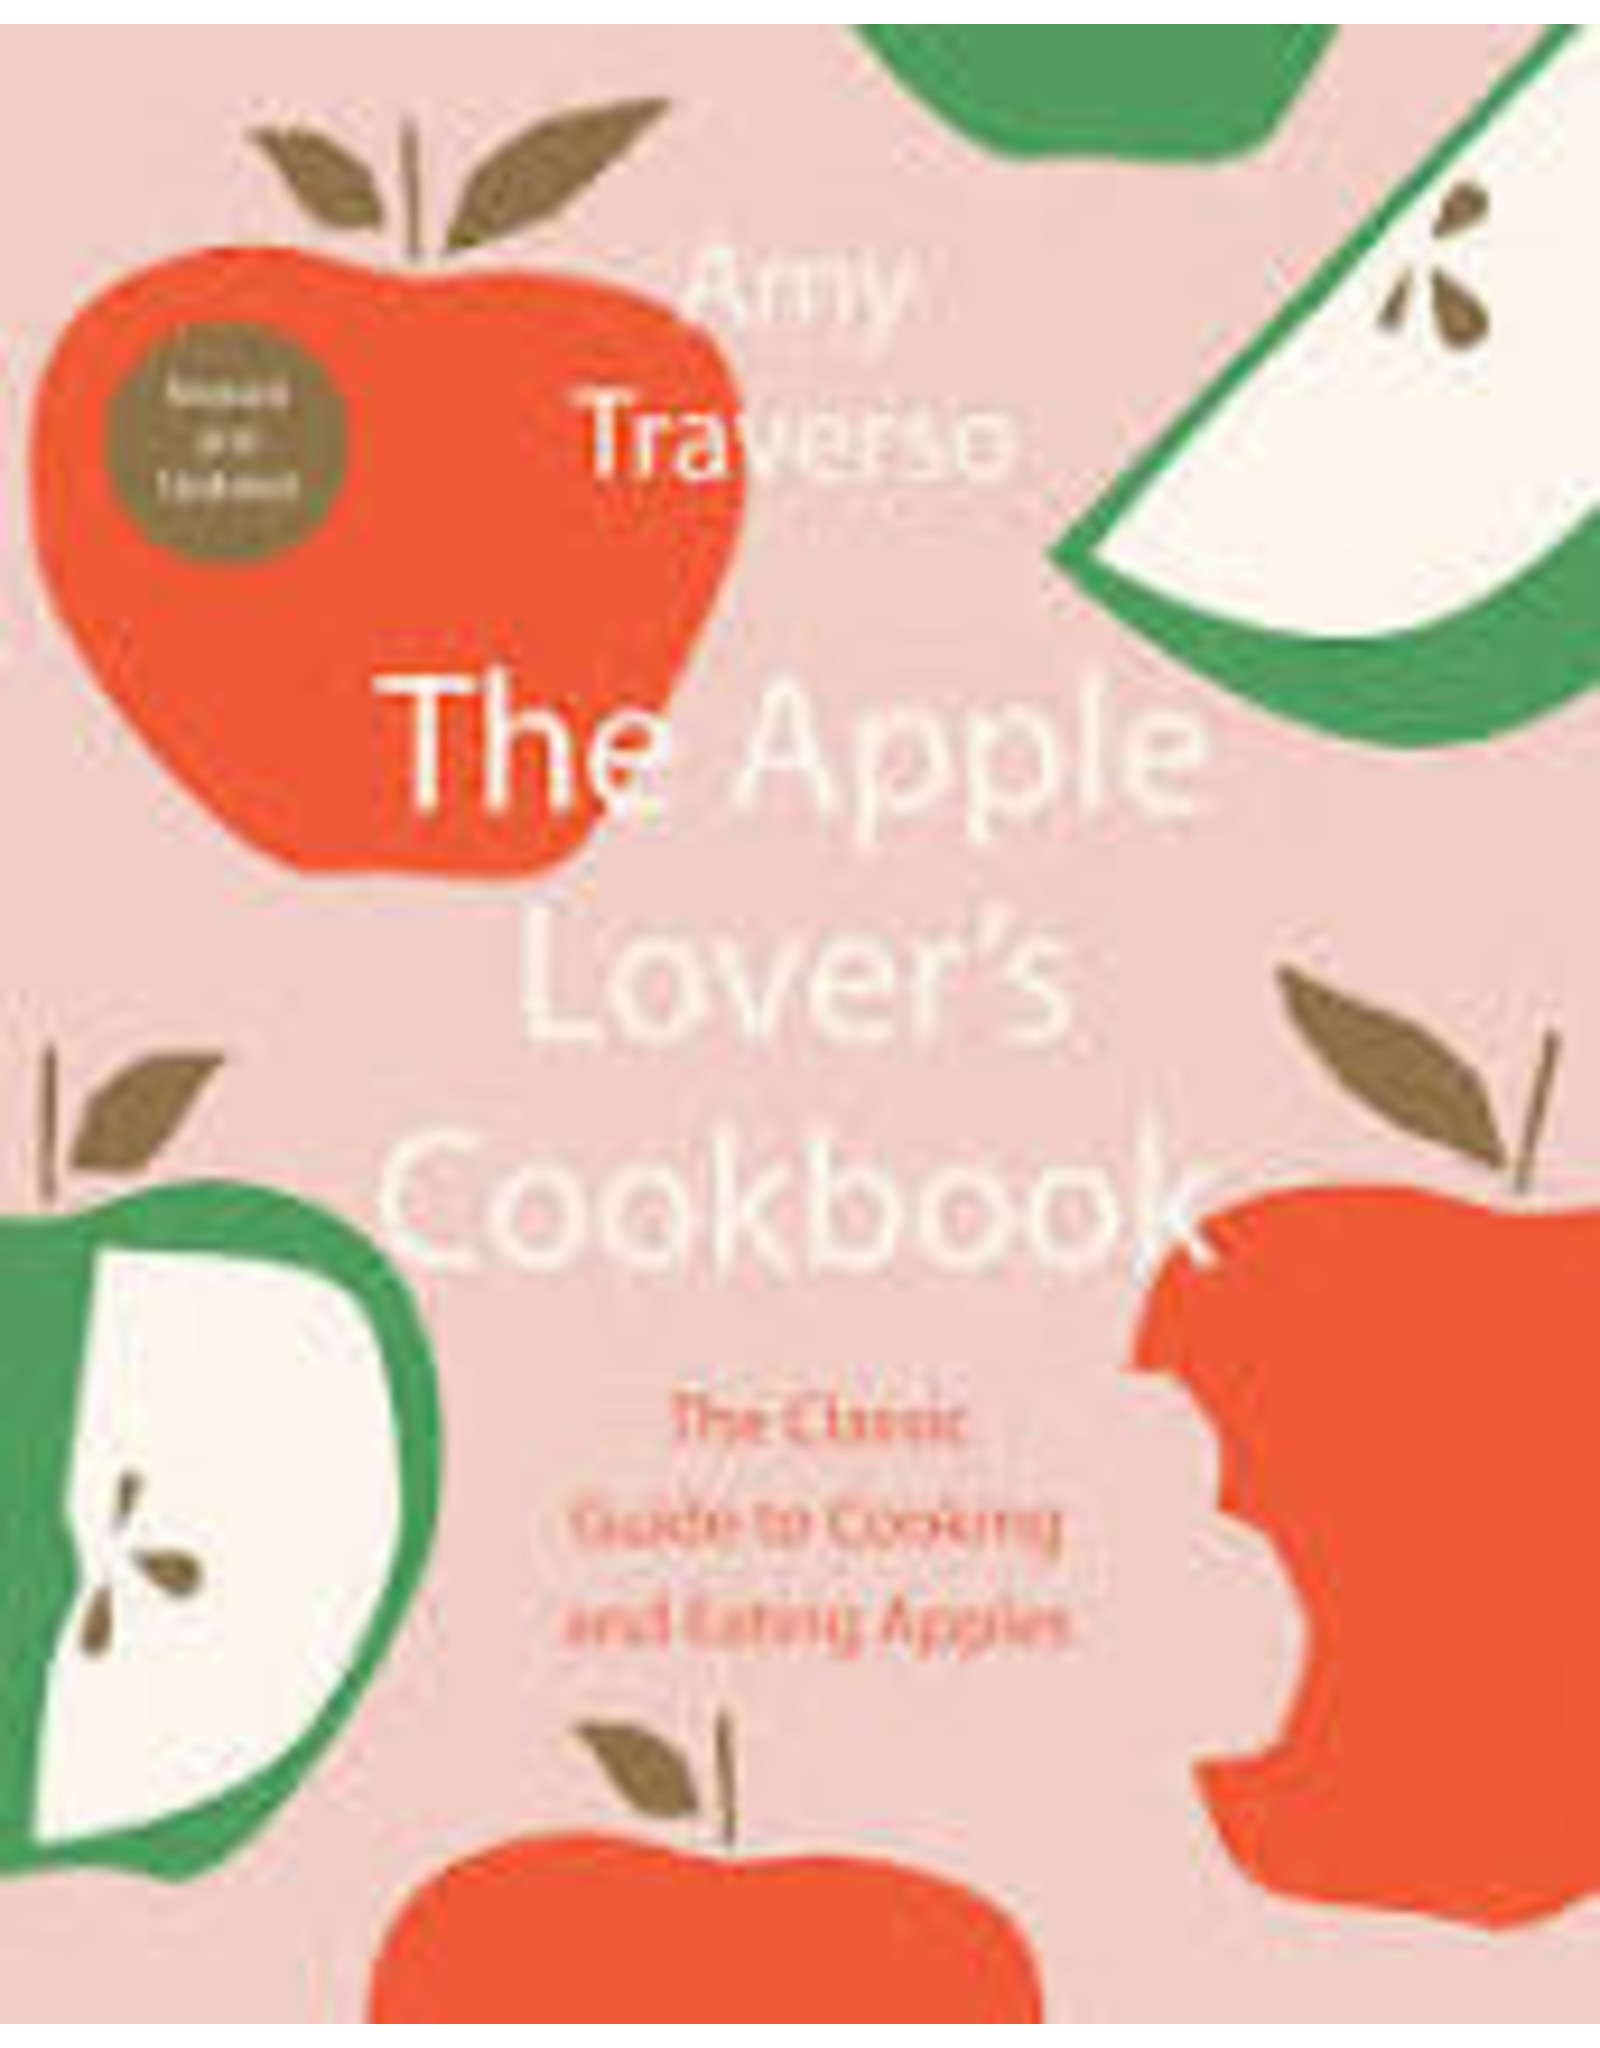 Books The Apple Lover's Cookbook by Amy Traverso